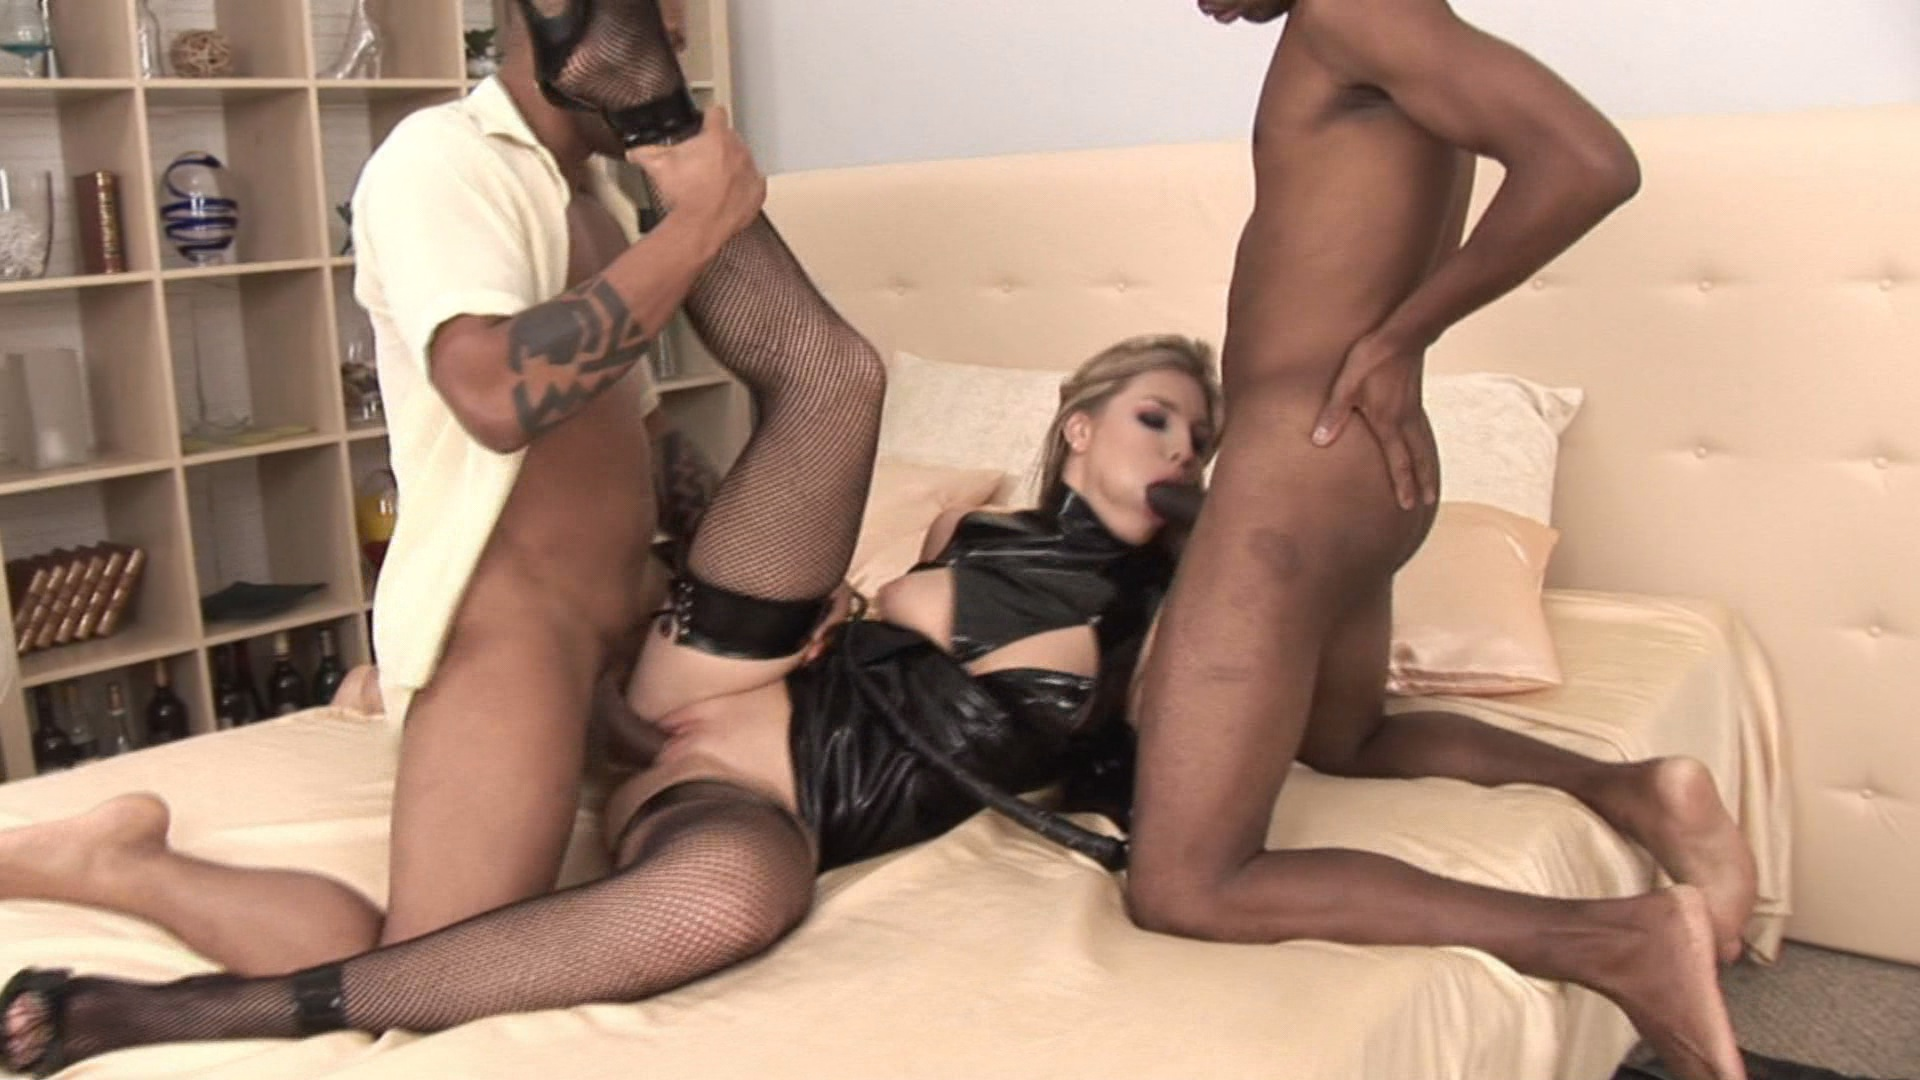 Blondes Look Good On Blacks Xvideos